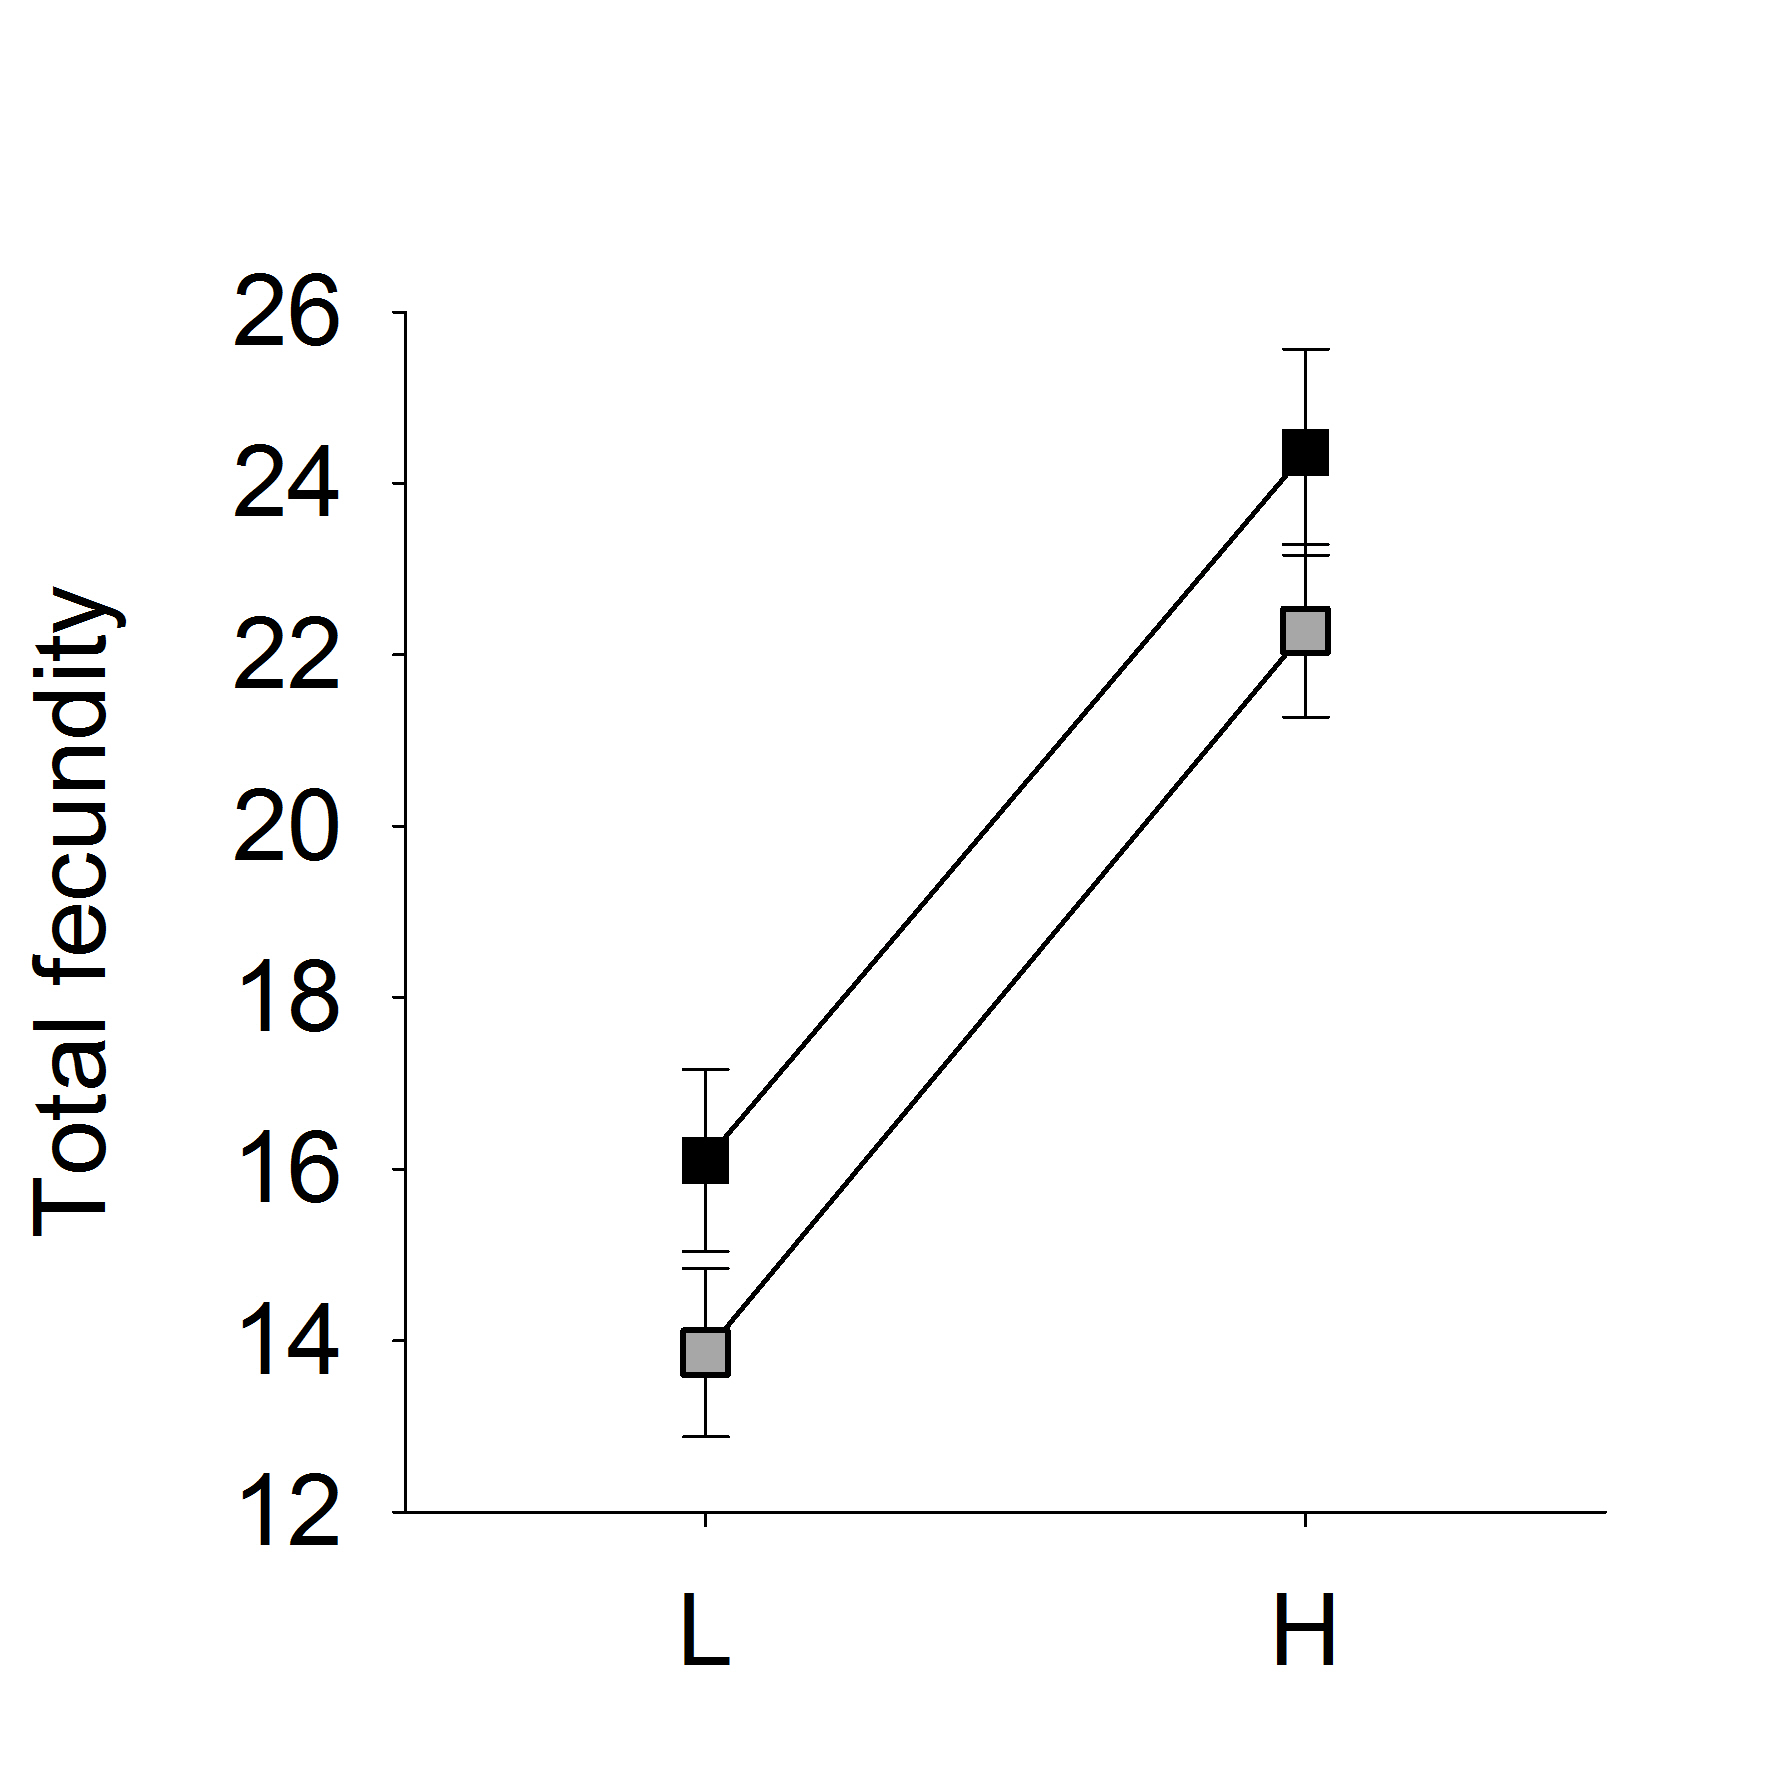 Reaction norms for fecundity of guppy females under low (L) and high (H) food conditions that were raised under low (black) and high (grey) food conditions.